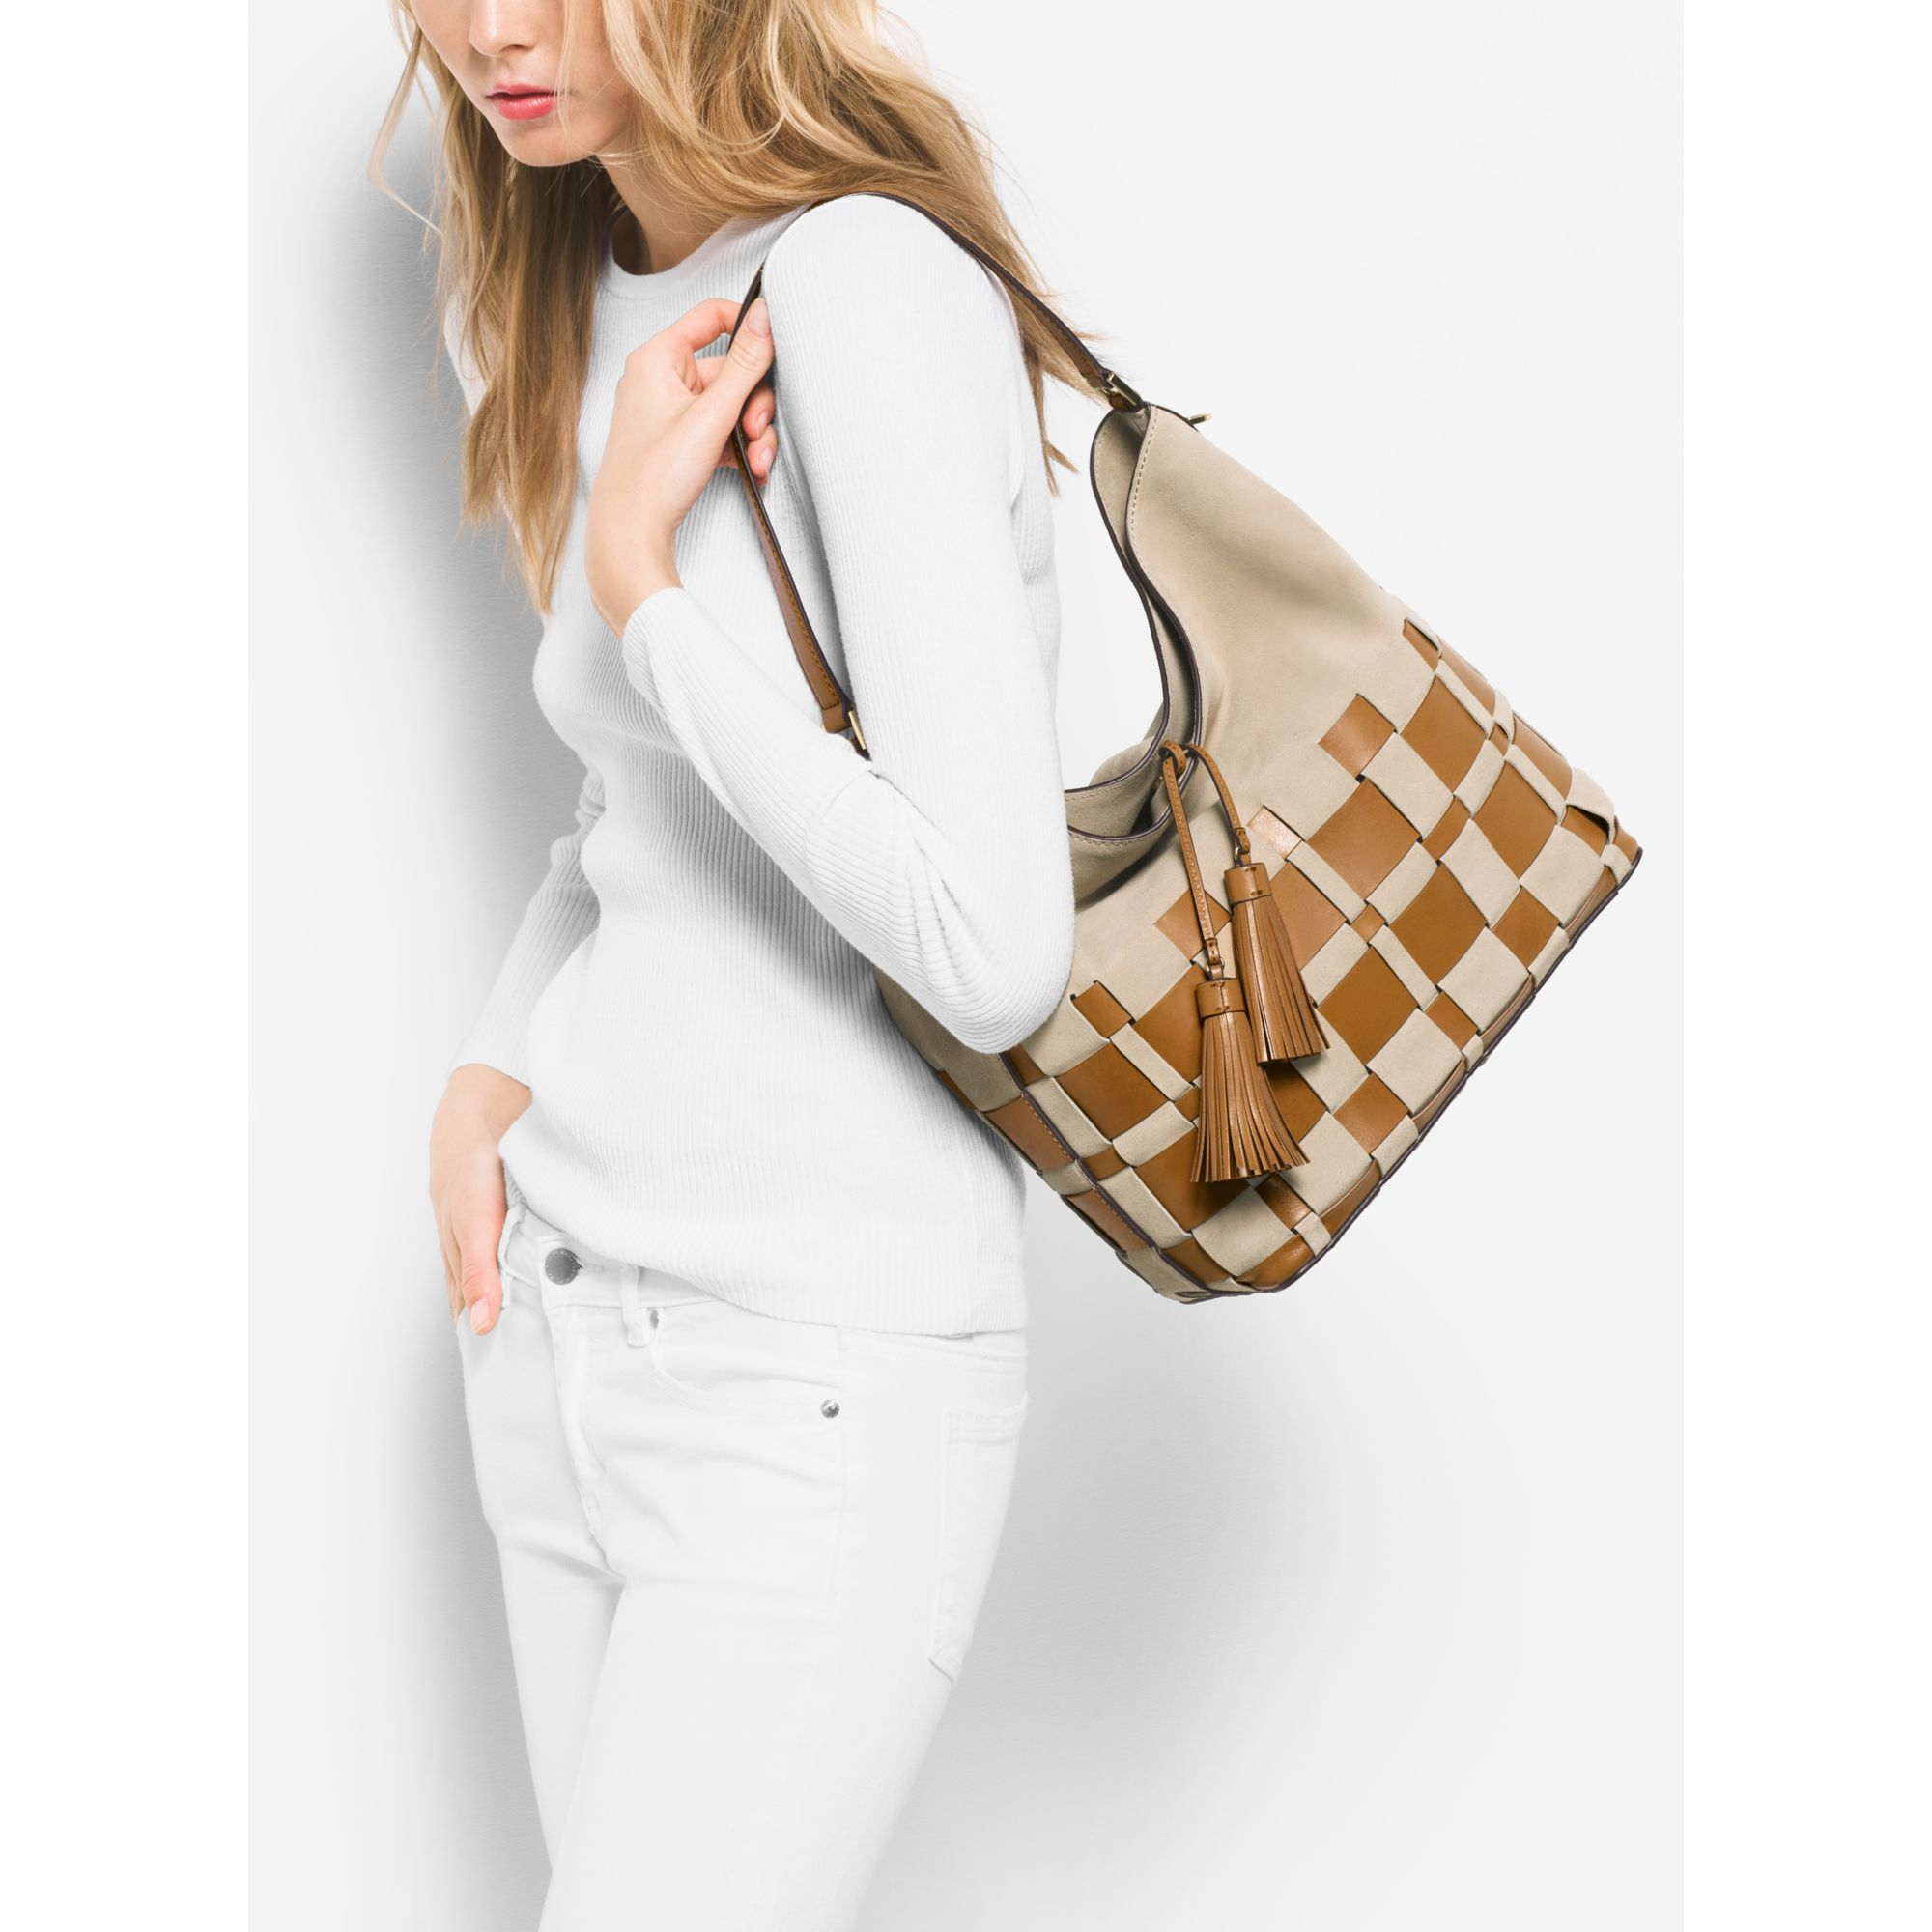 Lyst - Michael Kors Vivian Large Woven Suede And Leather Hobo in Natural 5f419f9e16543